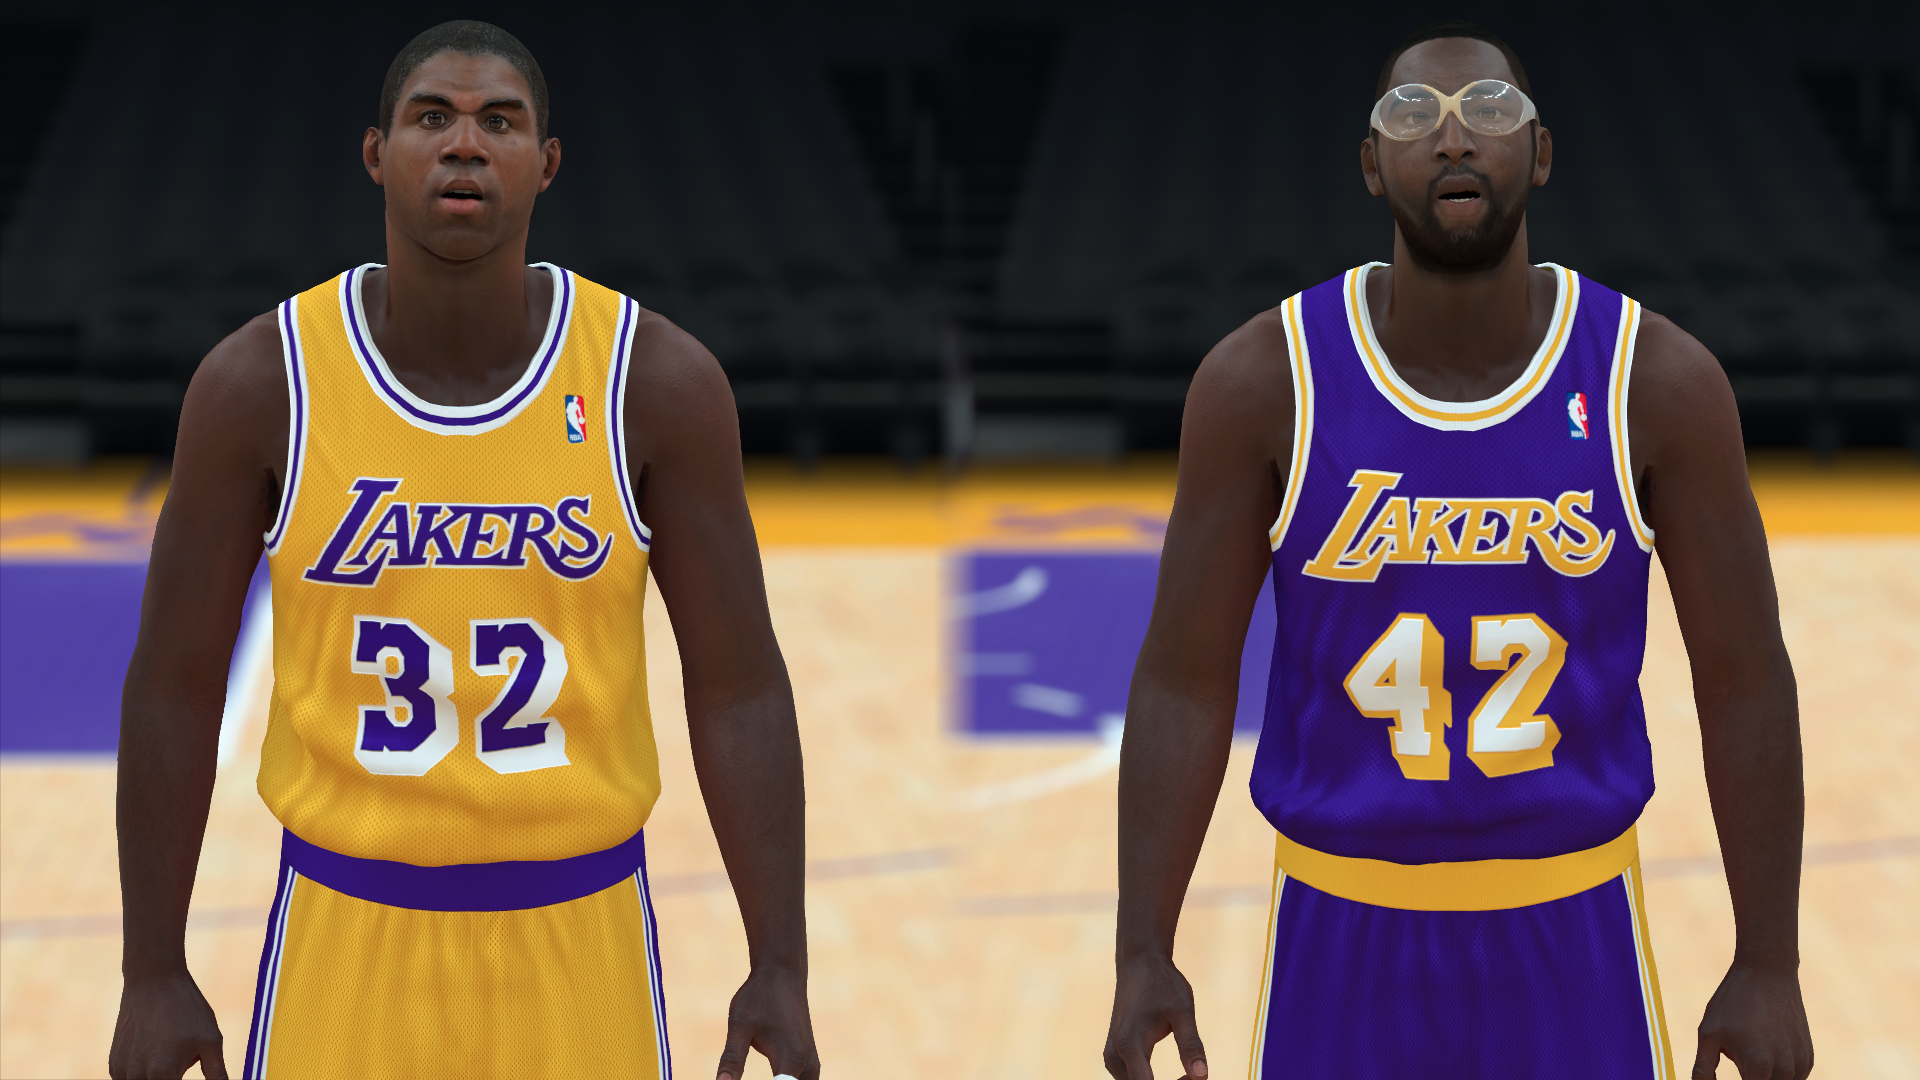 1990-1991 Lakers Jerseys - PeacemanNOT